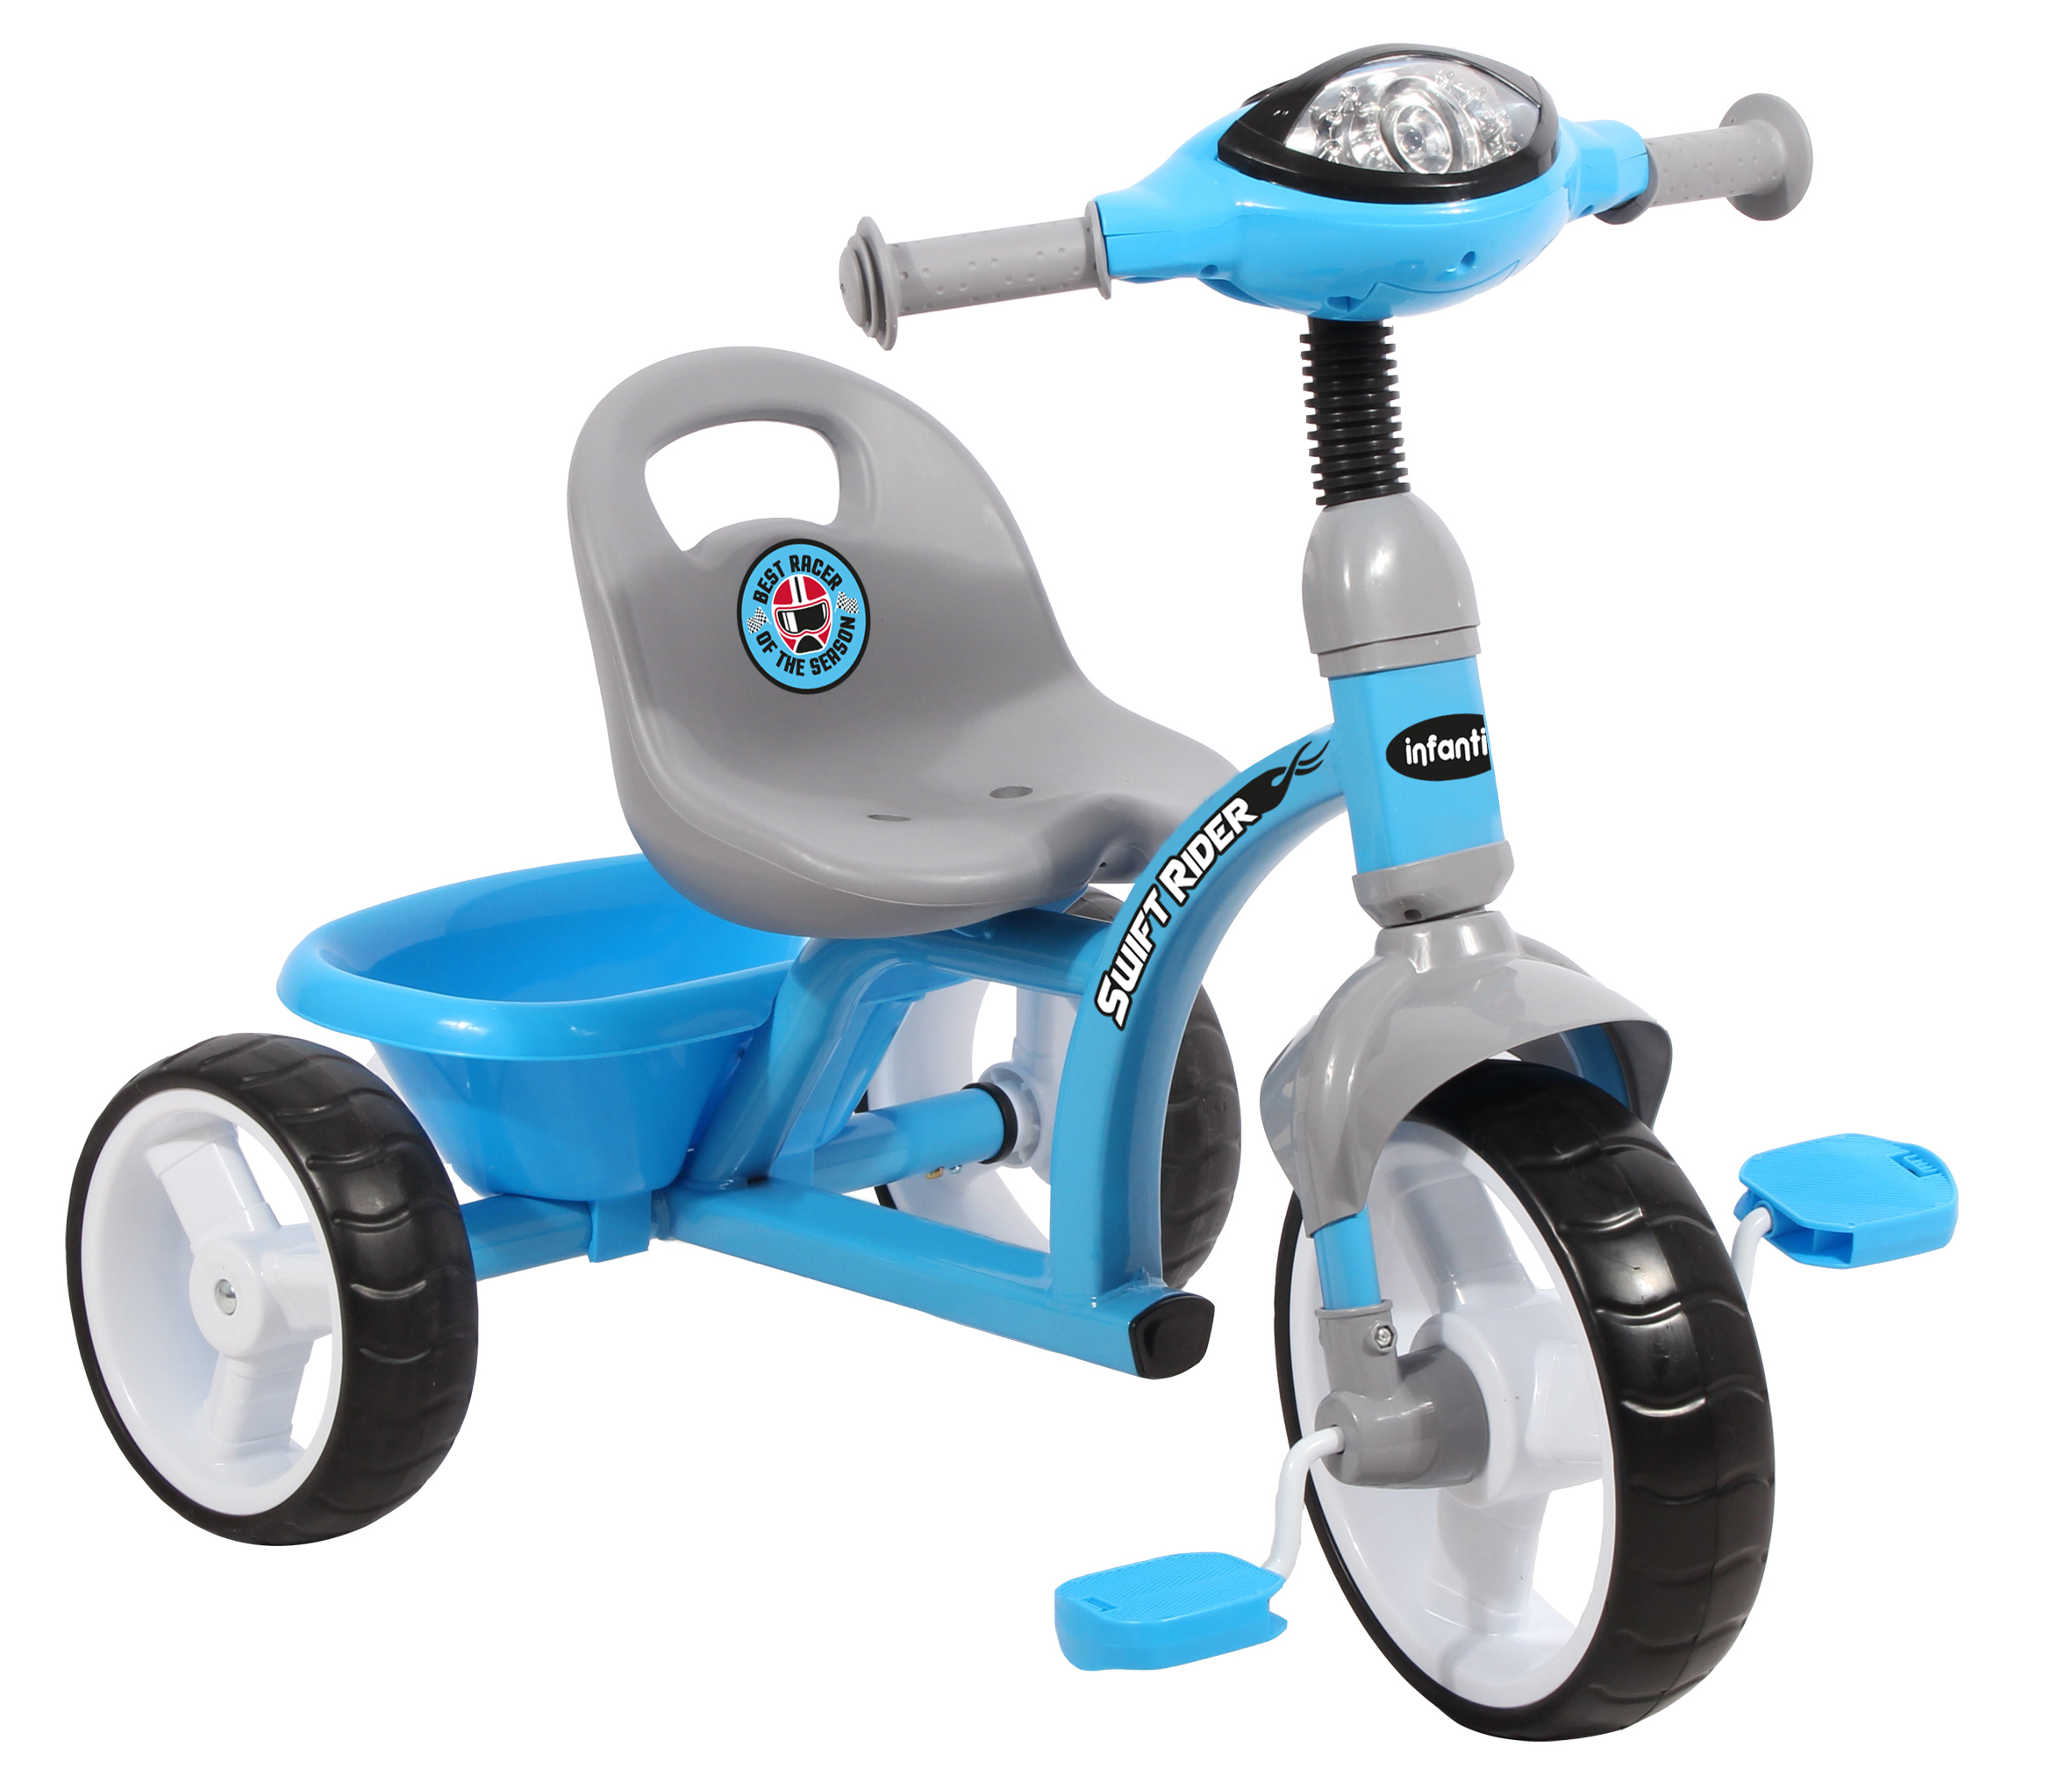 TRICICLO MONTABLE SWIFT RIDER INFANTI AZUL